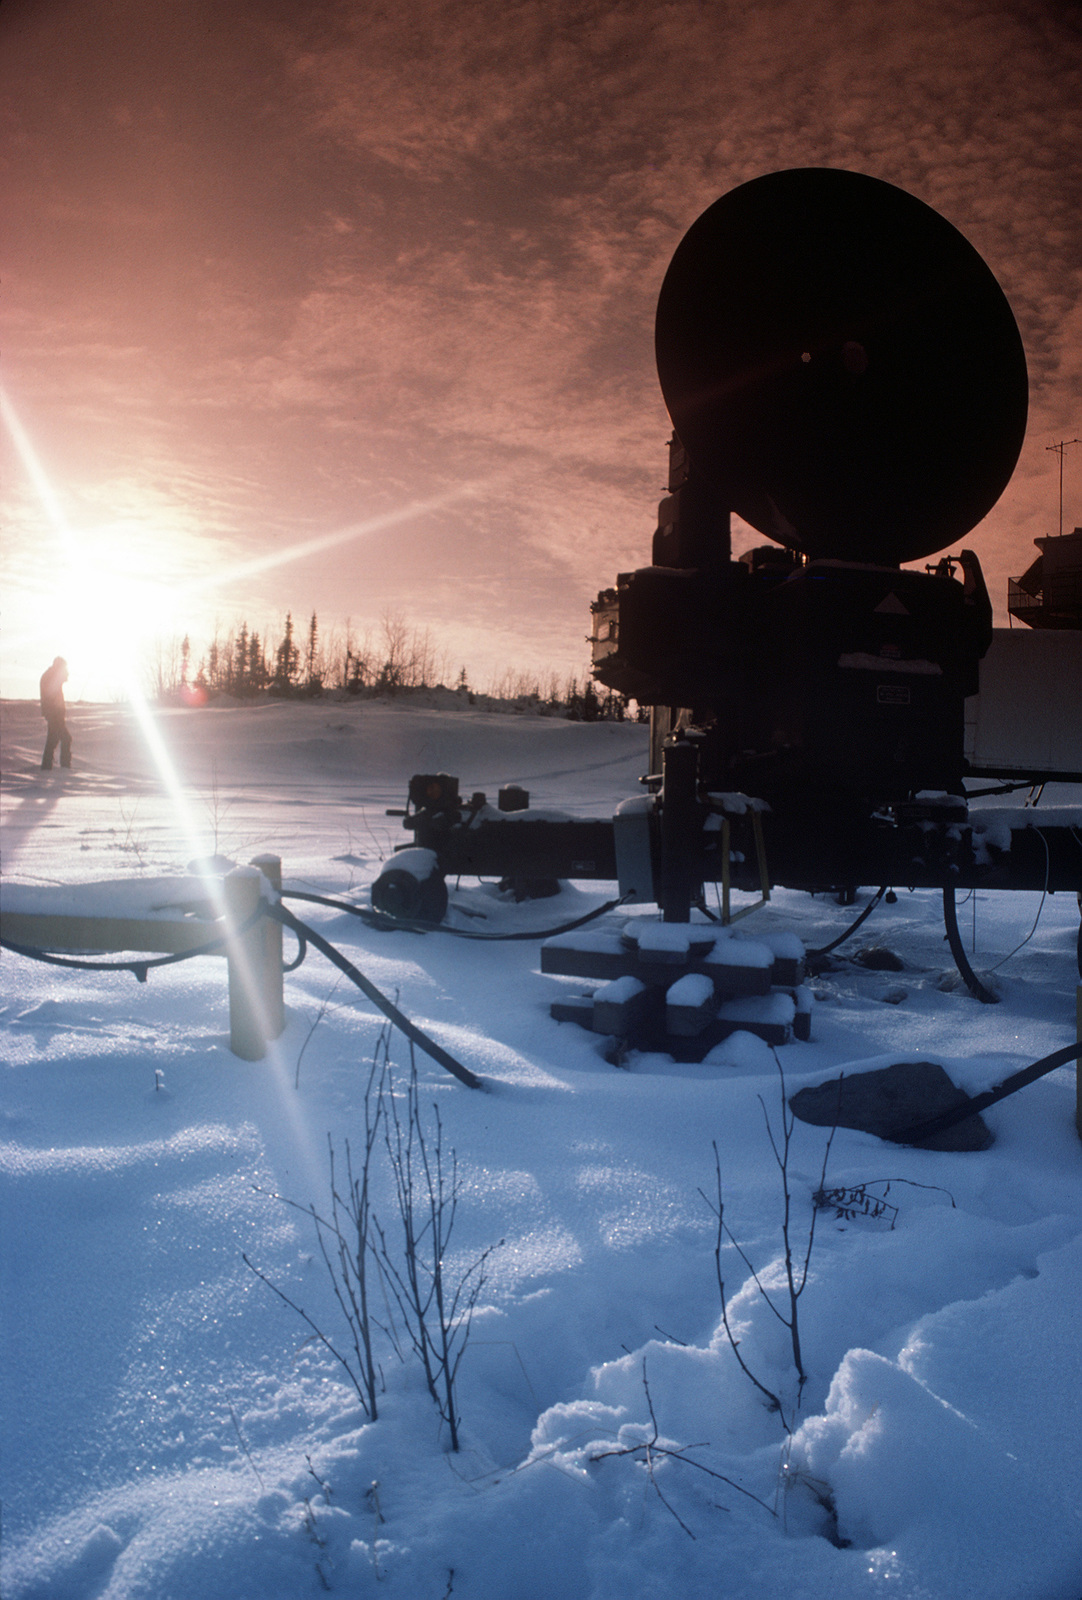 A microwave relay station system used for transmitting video from the range to Eielson Air Force Base is silhouetted by the sun. The relay station is maintained by the 5055th Range Squadron from Eielson and is used to help duplicate electronic threats that Air Force pilots would expect to face in actual battle